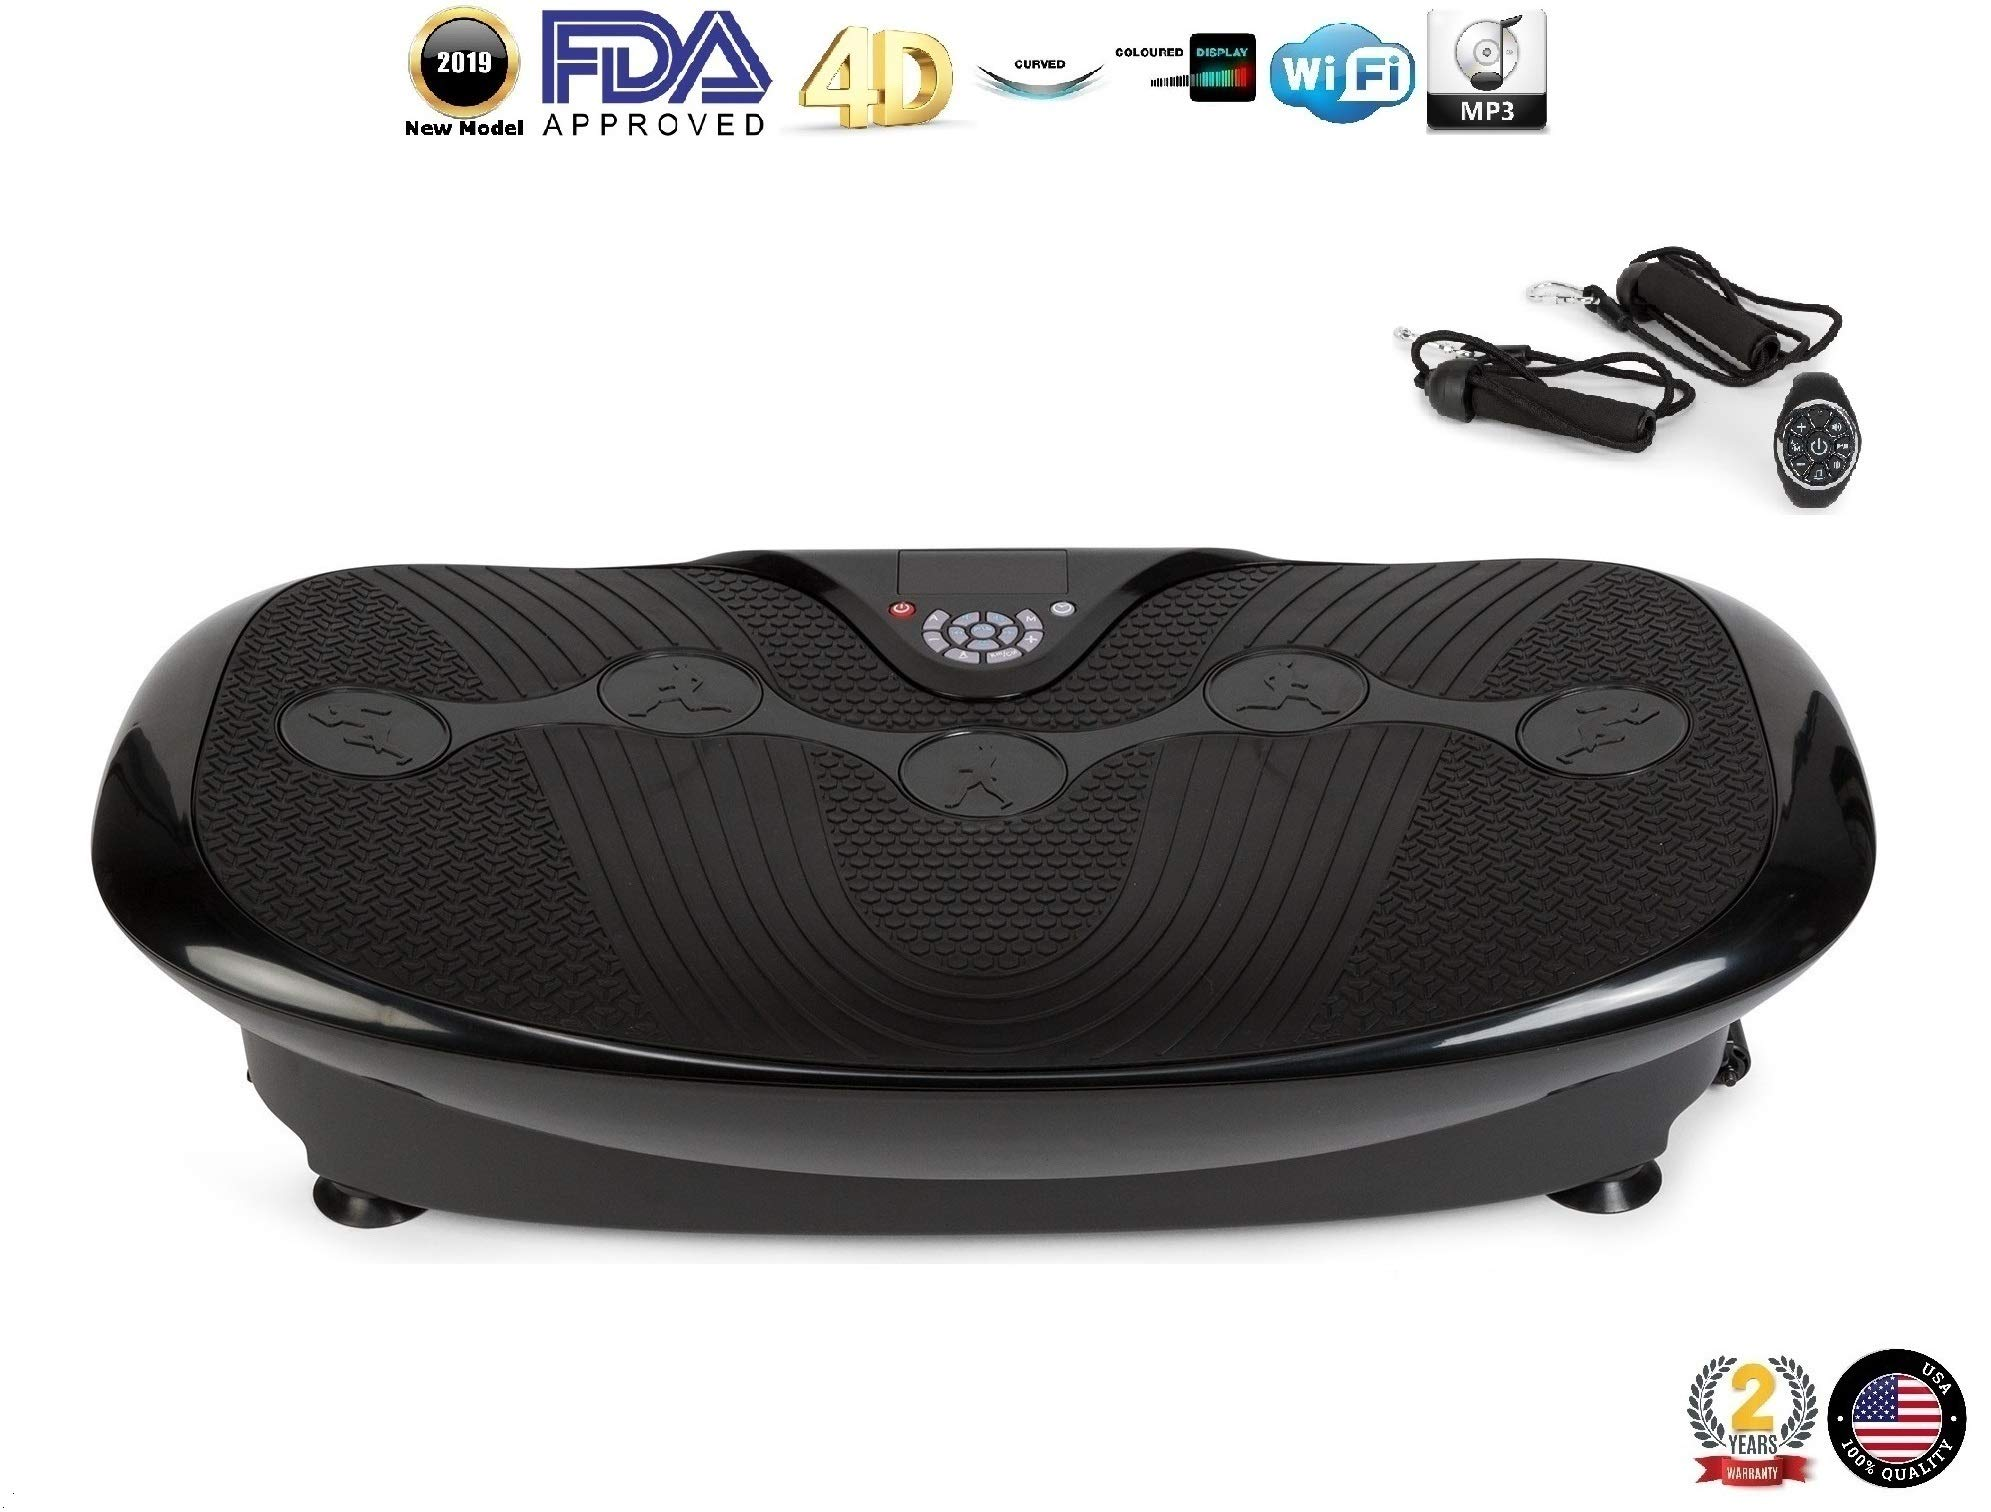 GLOBAL RELAX Zen Shaper Plus Vibration Plate - Black (2019 New Model) - Fitness oscillating Vibration Platform - MP3 Music - 3 Exercise Areas (Walk-Jogging-Running) - 2 Years Official Warranty US by GLOBAL RELAX